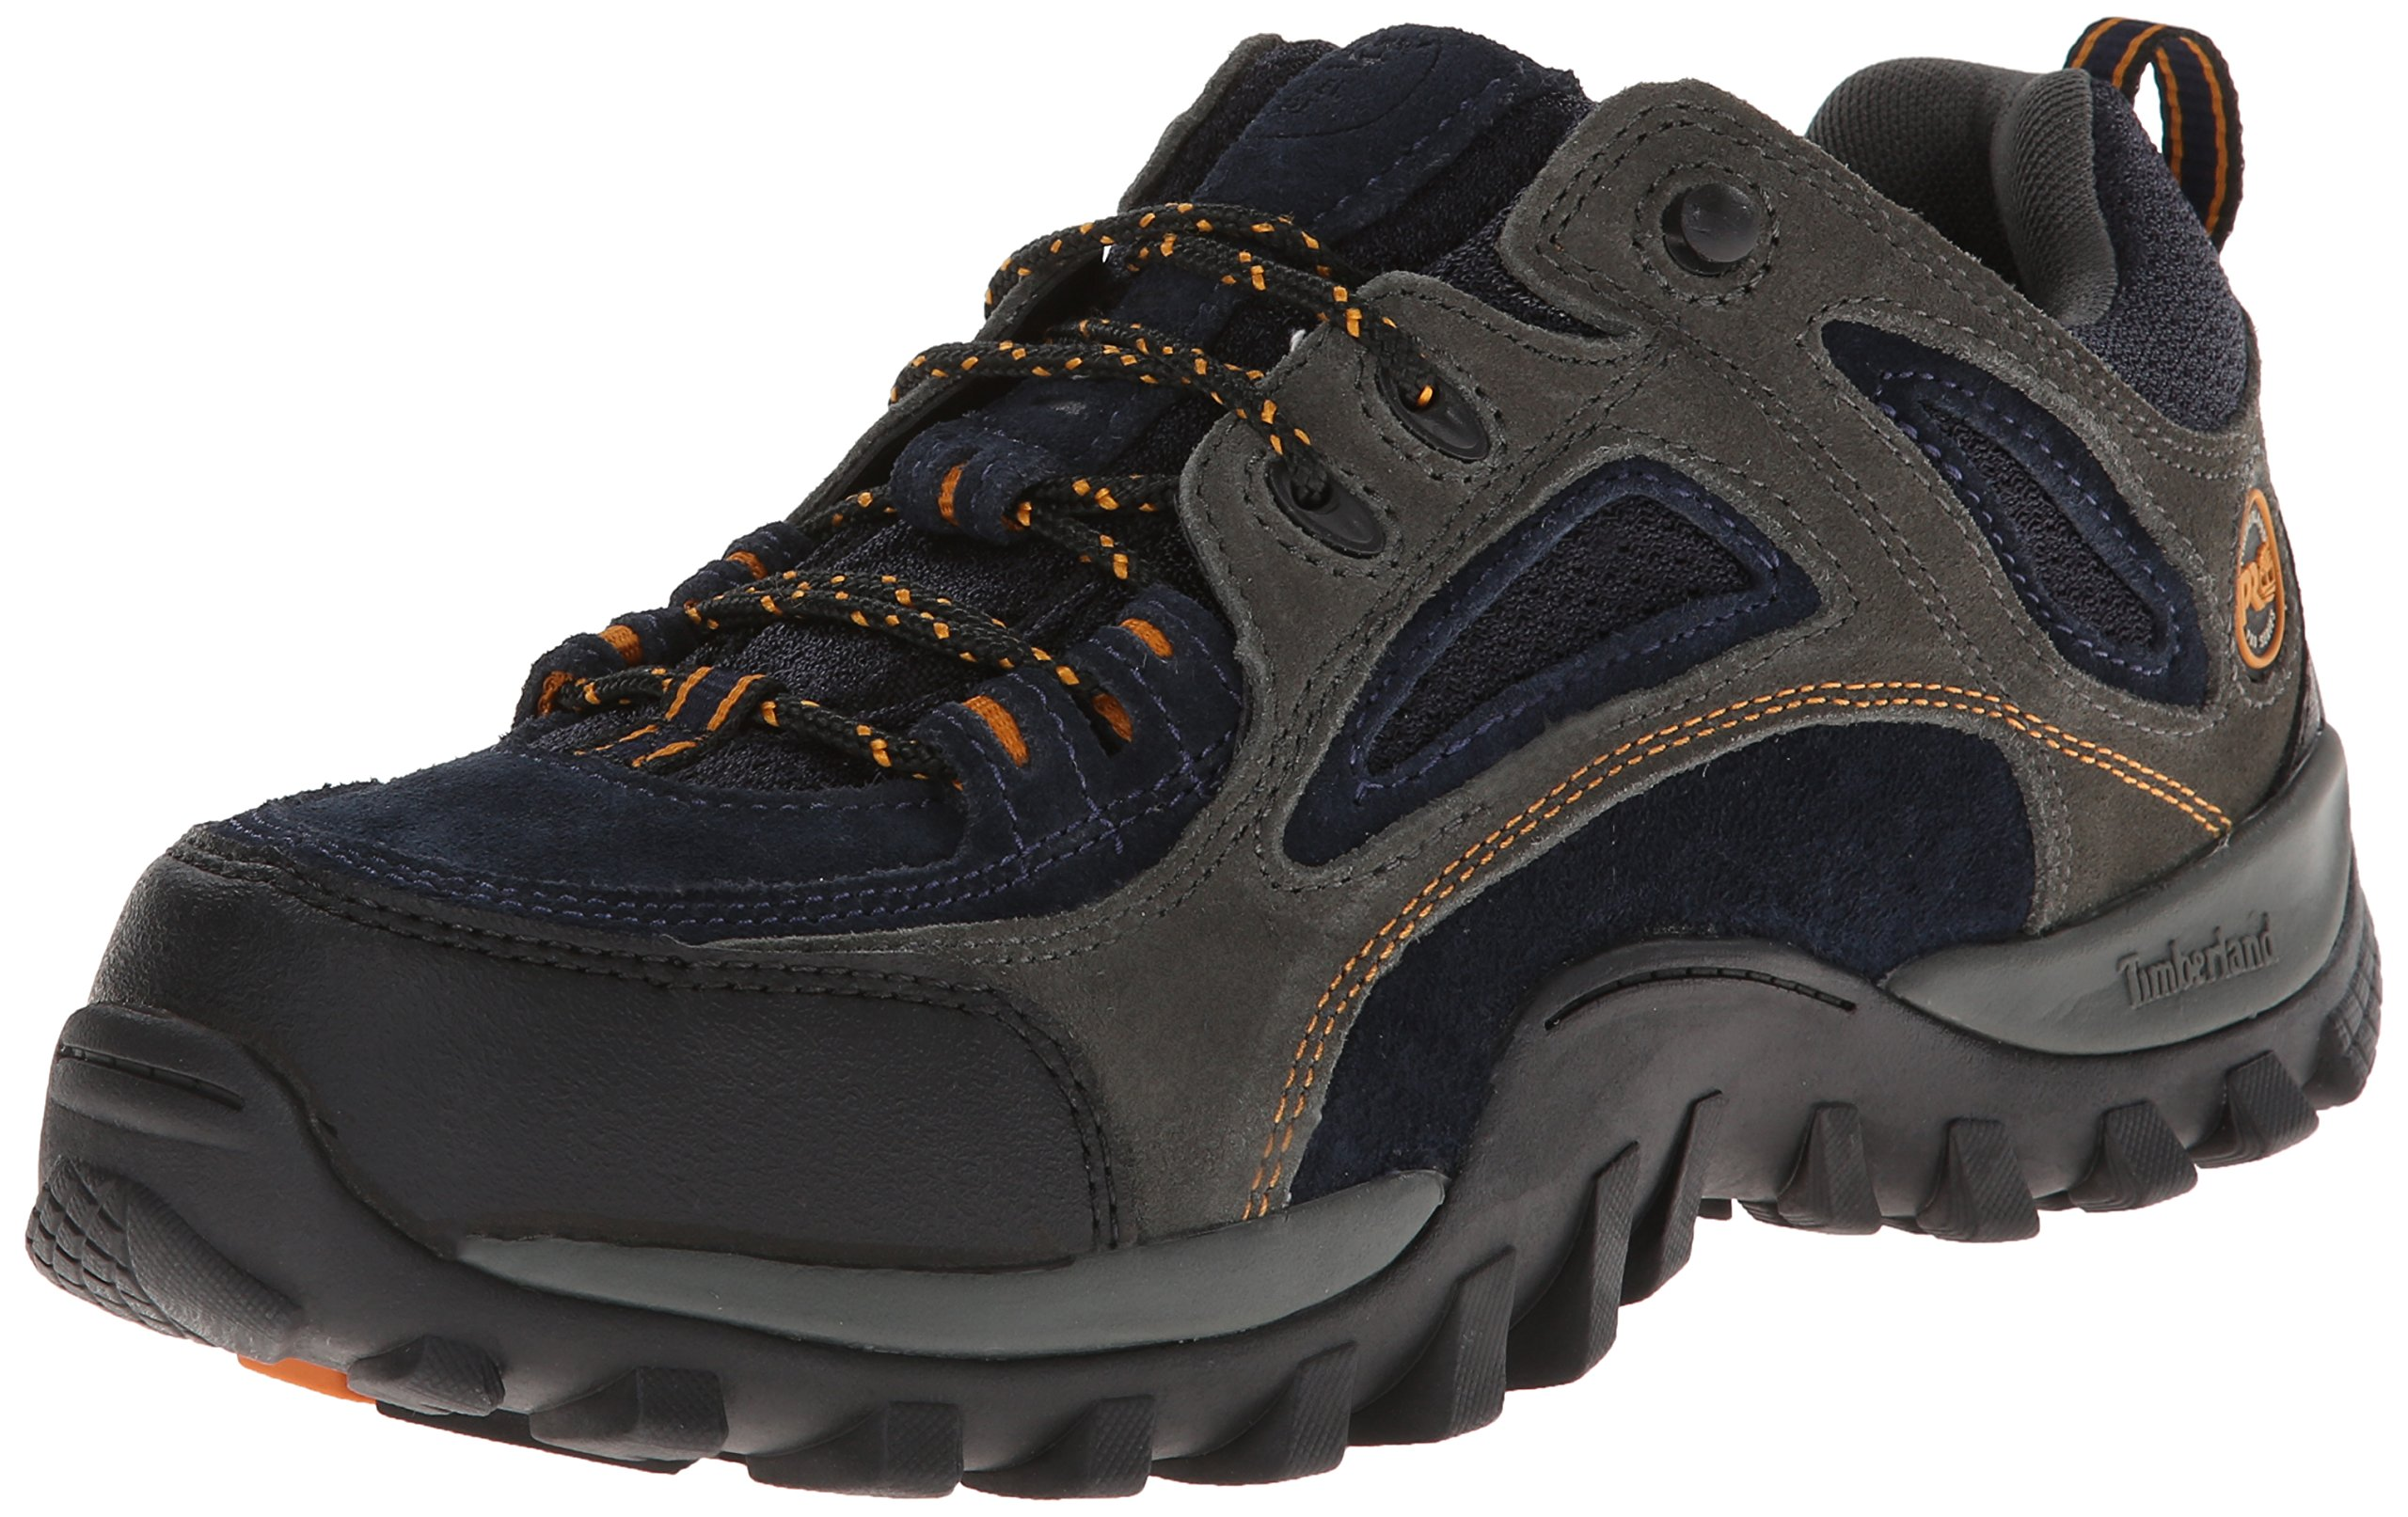 Timberland PRO Men's Mudsill Steel Toe Oxford Shoe,Blue/Blue,12 W